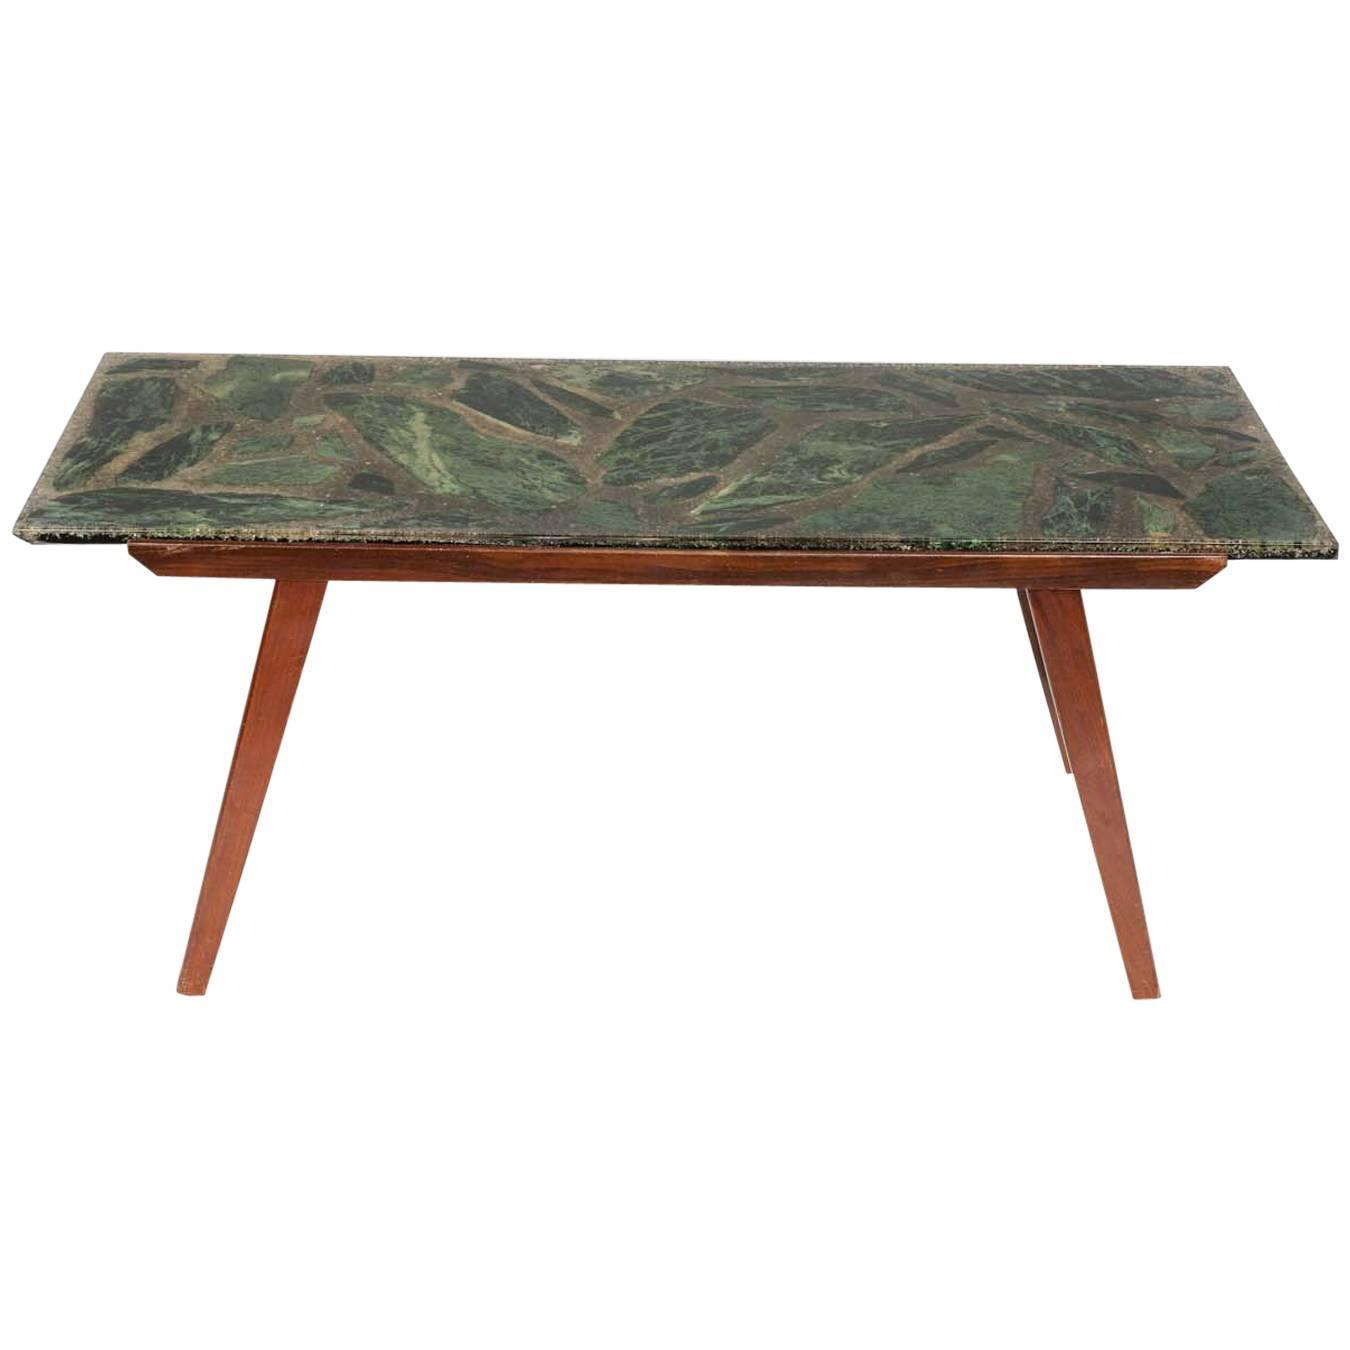 Danish Style Coffee Table: Green Marble And Resin Danish Style Coffee Table With